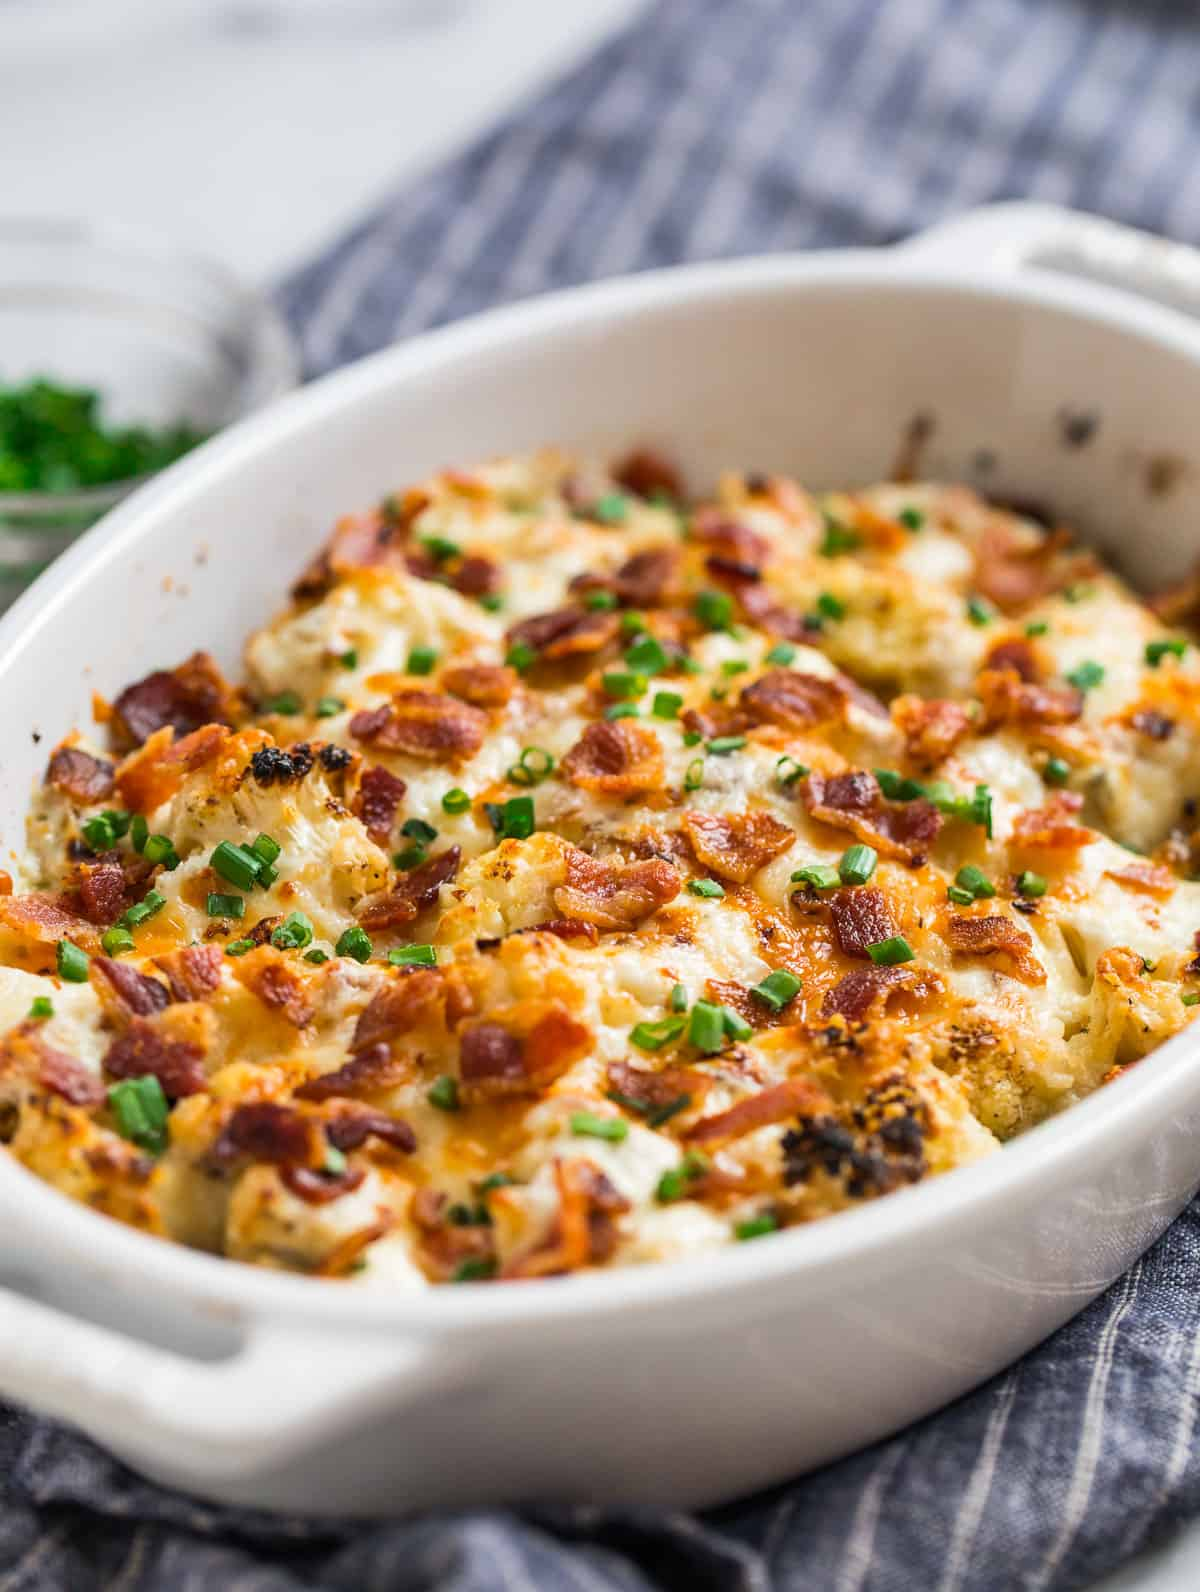 Christmas or Thanksgiving cauliflower casserole in a baking dish with bacon and chives